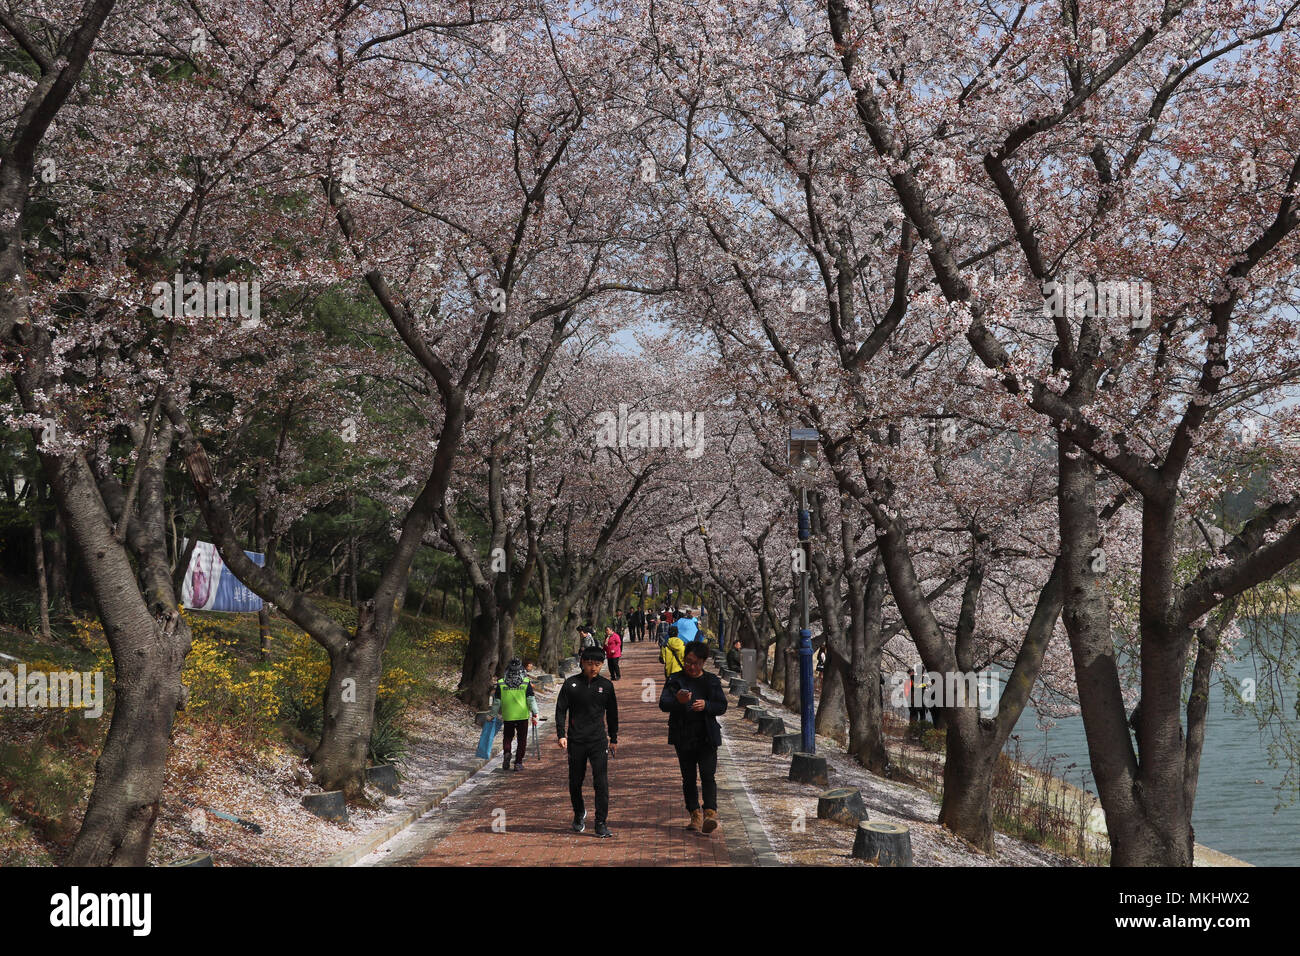 Visitors strolling around Lake Bomun in Gyeongju, South Korea, at the peak of cherry blossom season (beojkkoch), tall cherry trees cover the pathway. Stock Photo